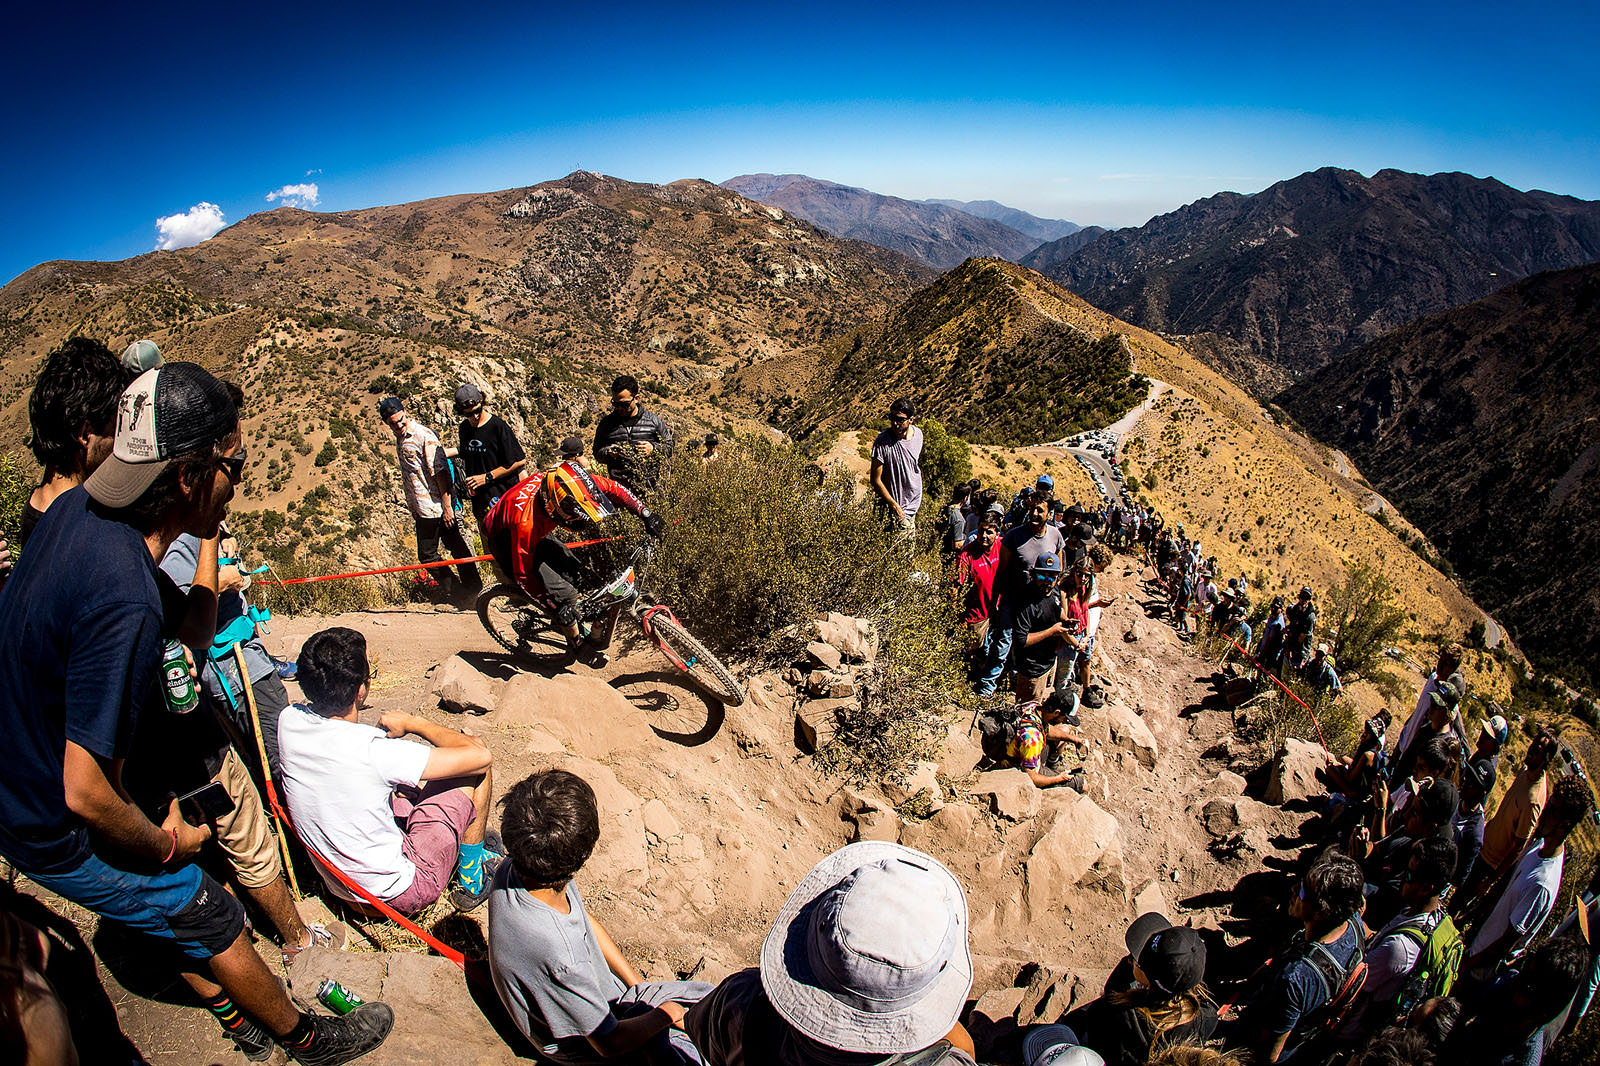 Santa Cruz Bicycles - The Crowd Knows Where the Action Is at EWS Round One in Chile